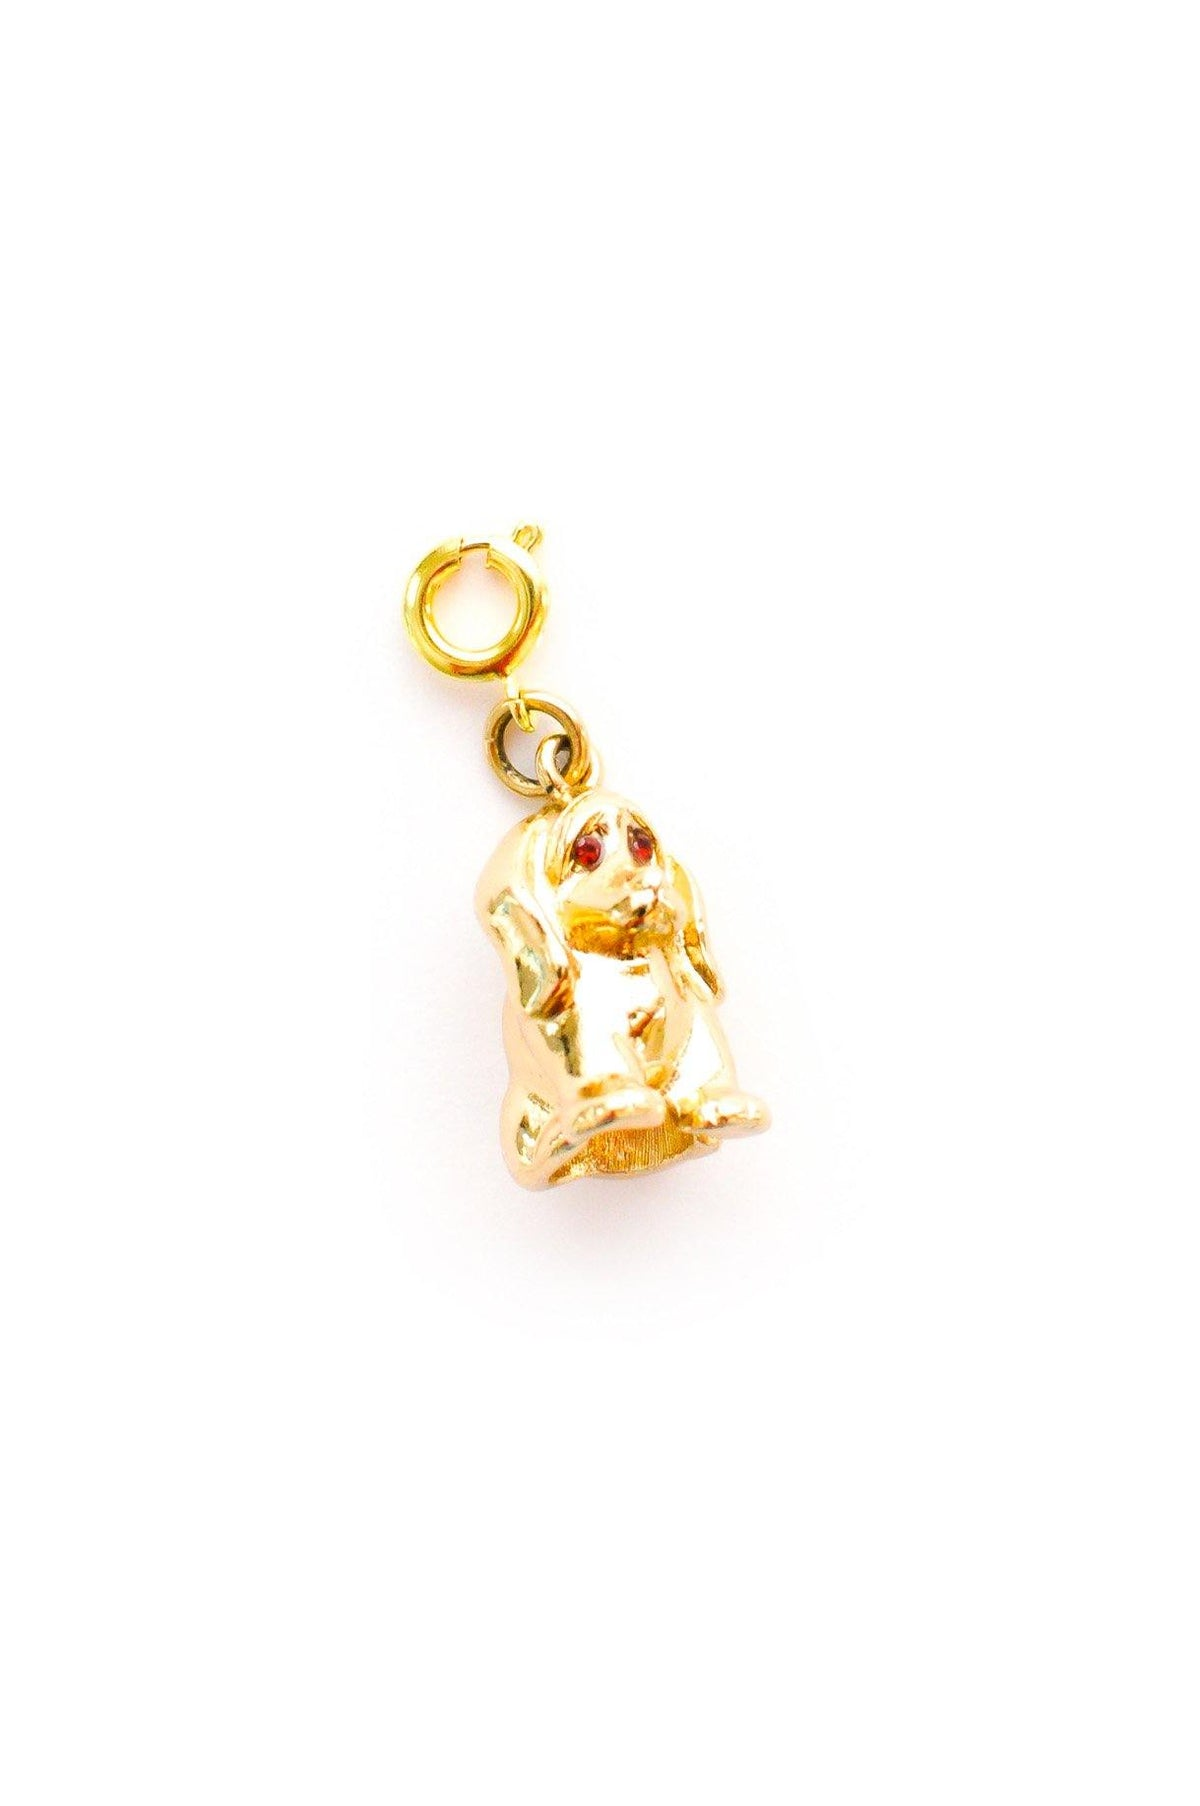 Vintage Monet puppy charm from Sweet & Spark.